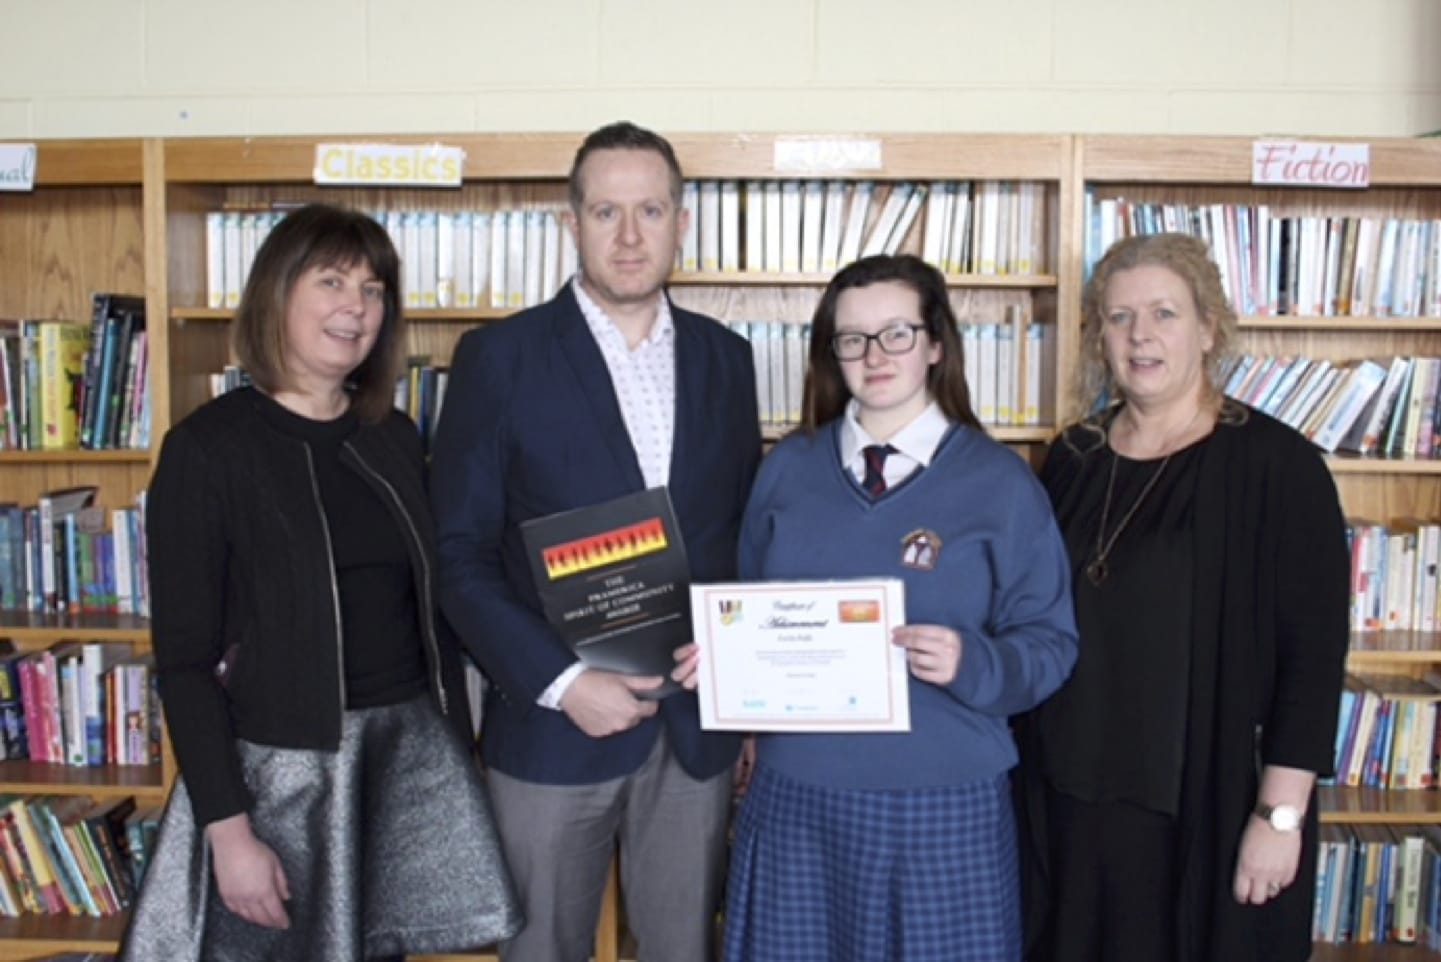 March 2017: Desmond College Student awarded by Pramerica to acknowledge her outstanding volunteer work